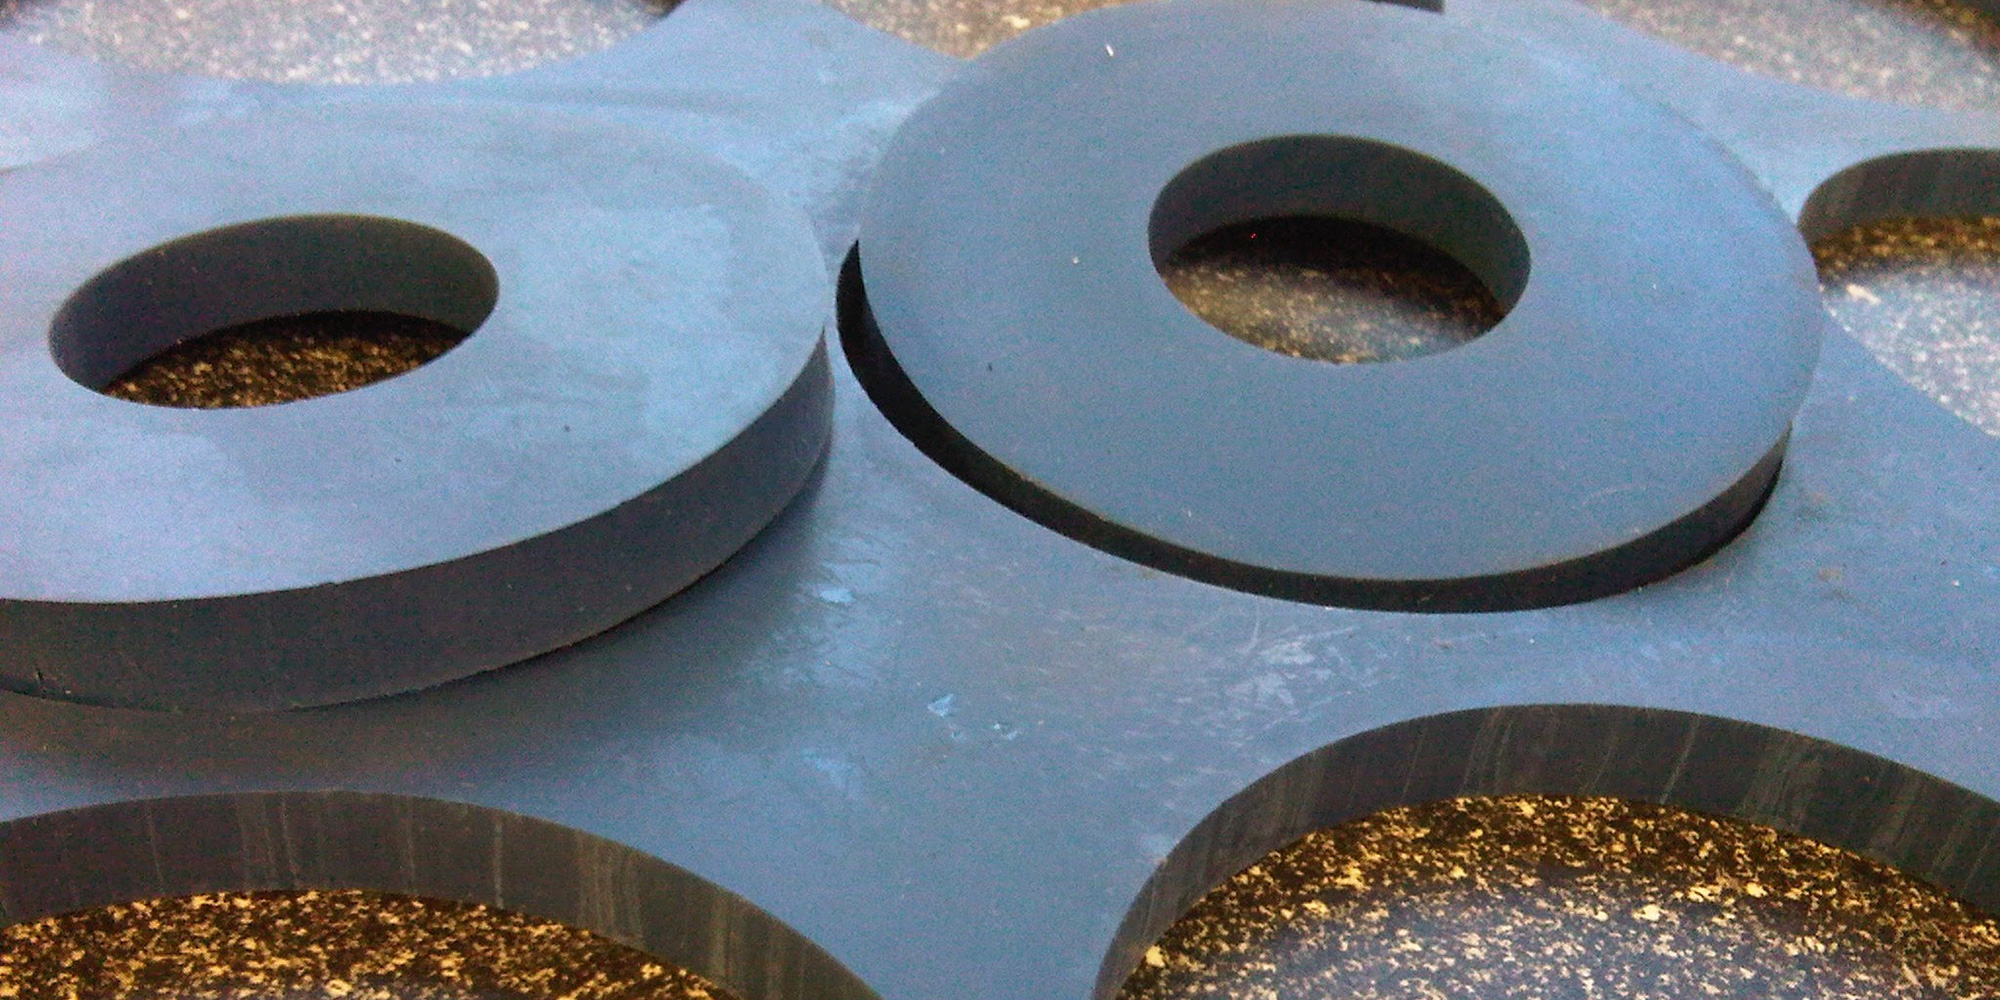 Cut washers